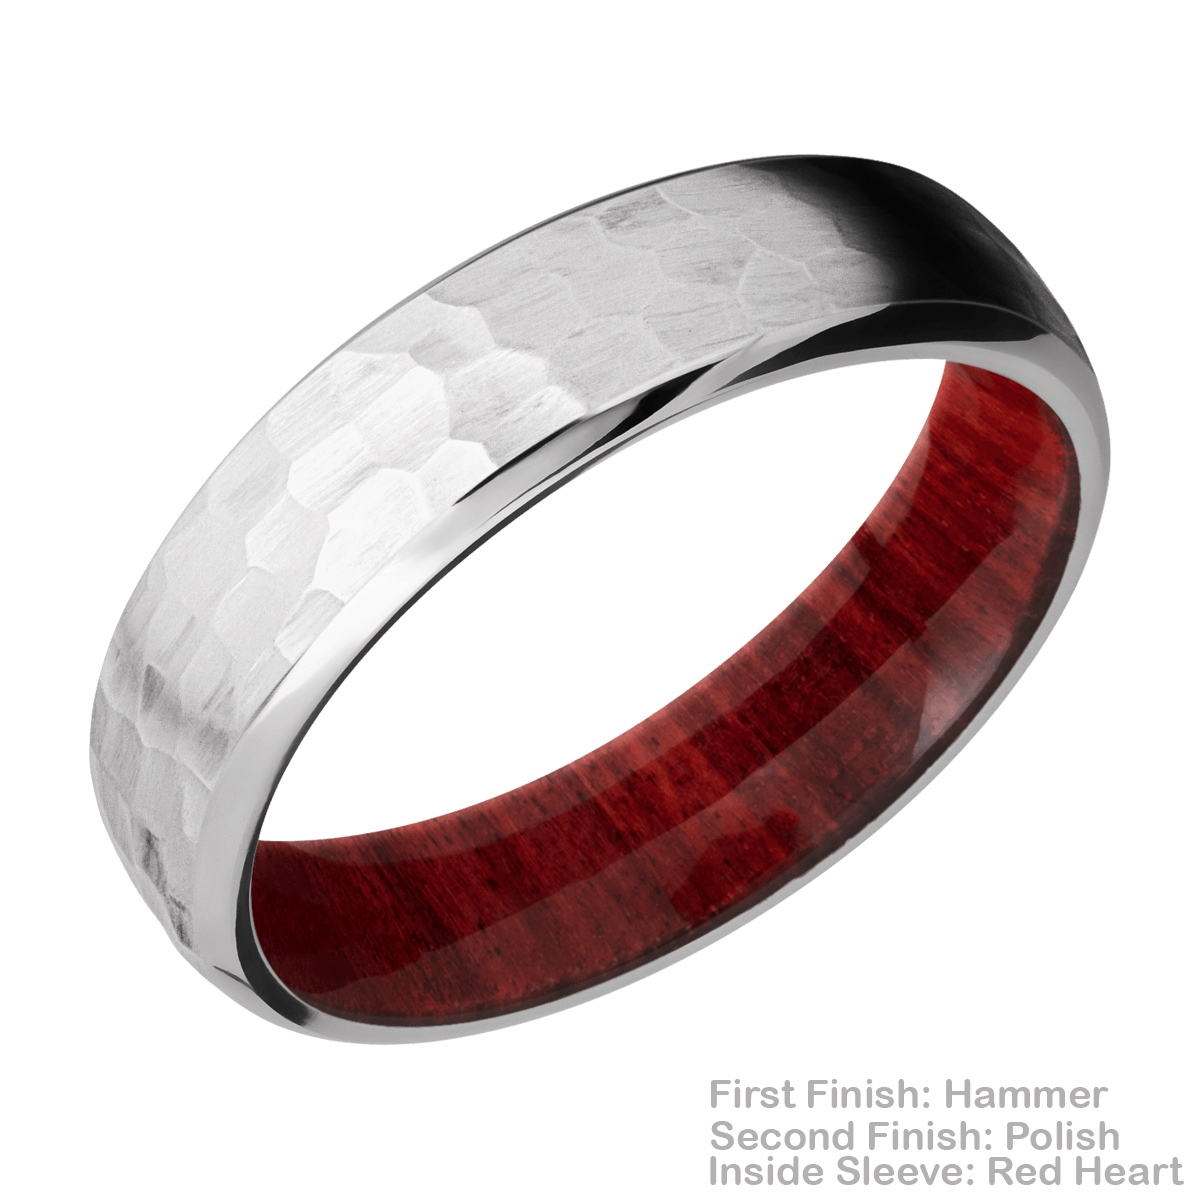 Lashbrook HWSLEEVECC6DB Cobalt Chrome and Hardwood Wedding Ring or Band Alternative View 10